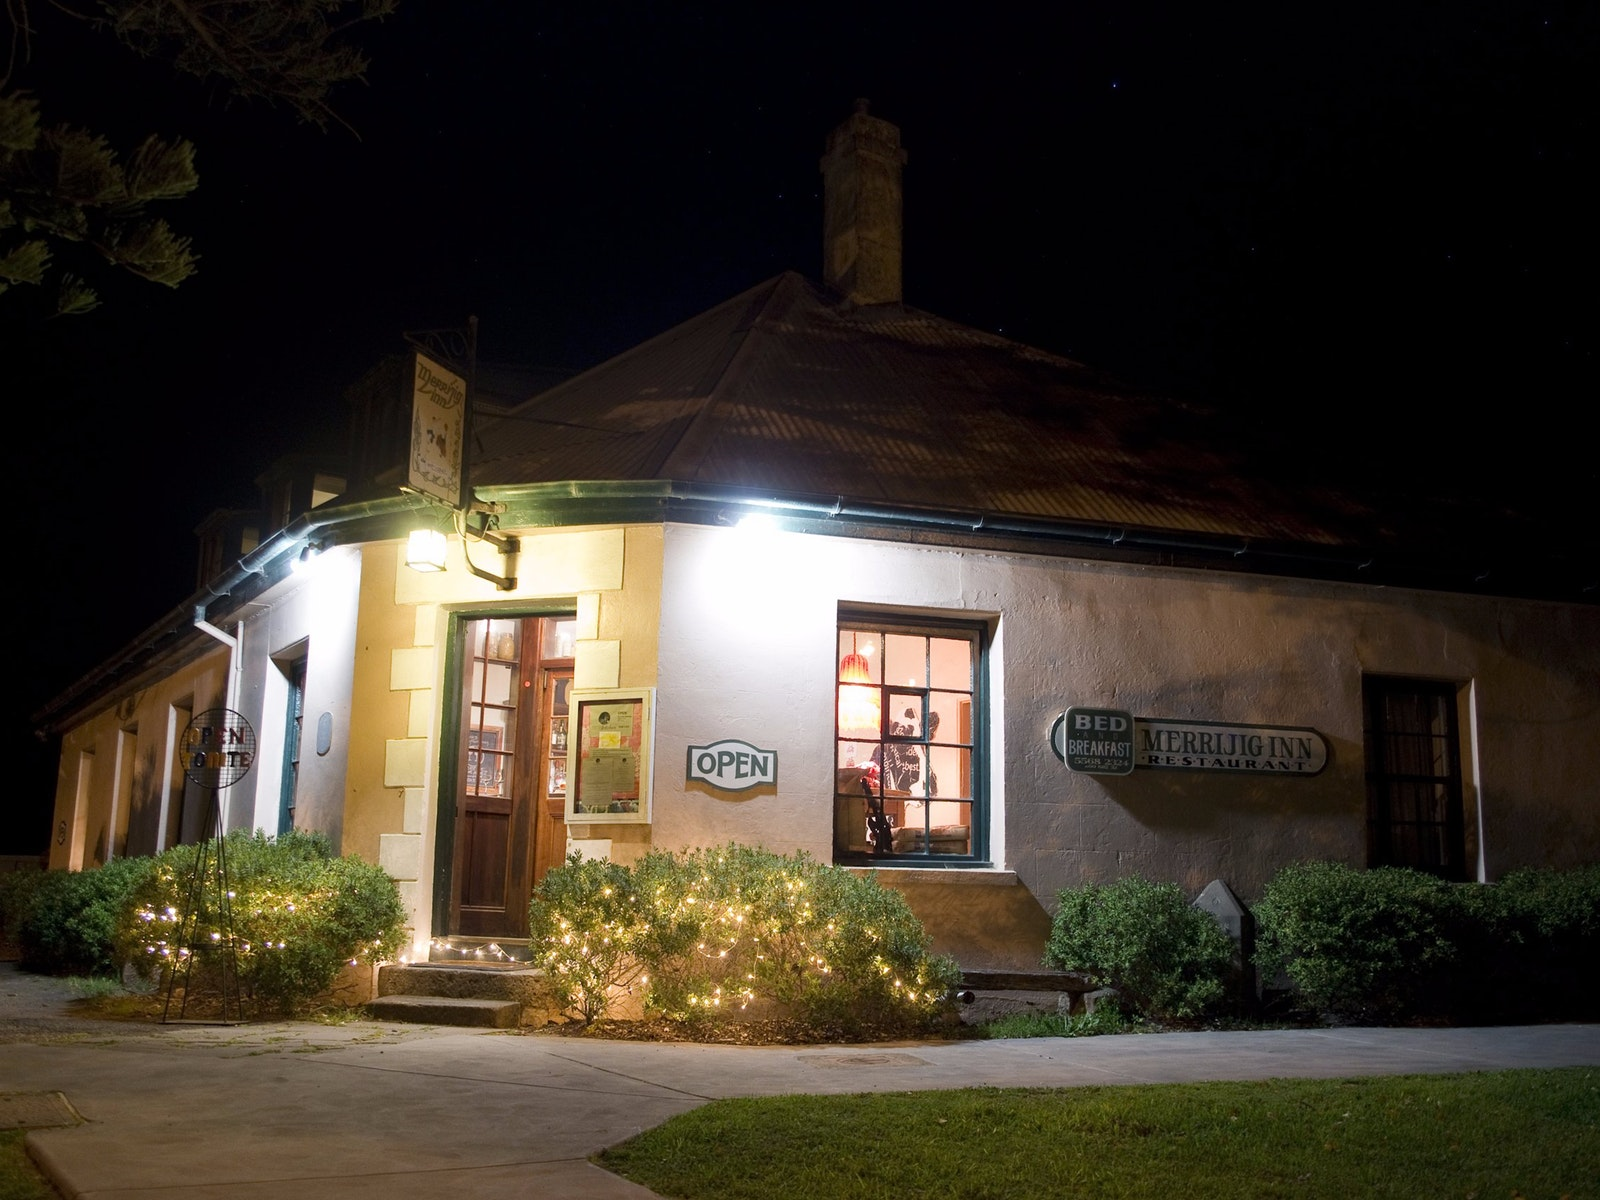 Merrijig inn at night